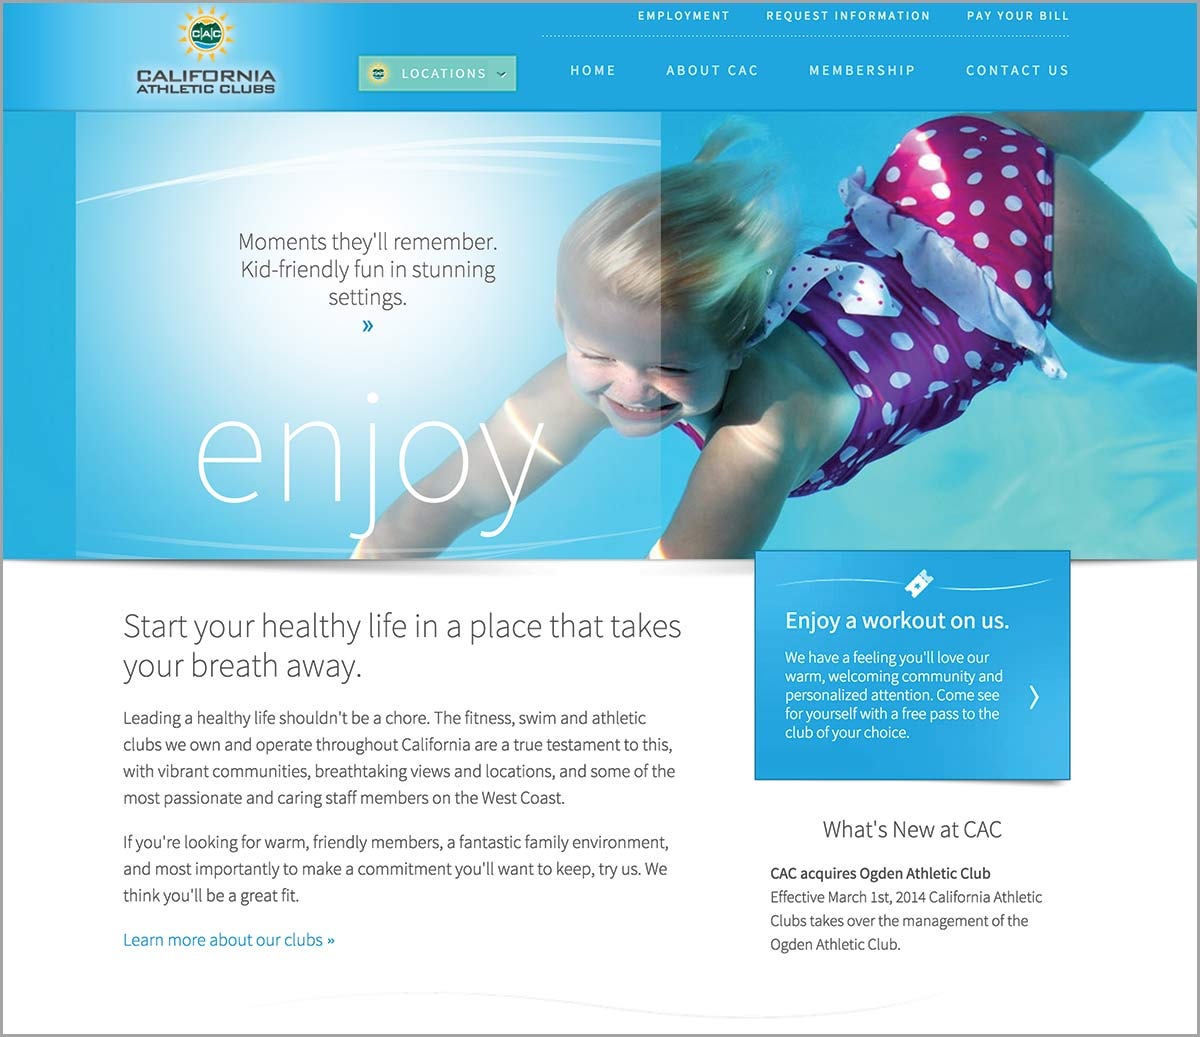 California Athletic Clubs (CAC) Homepage